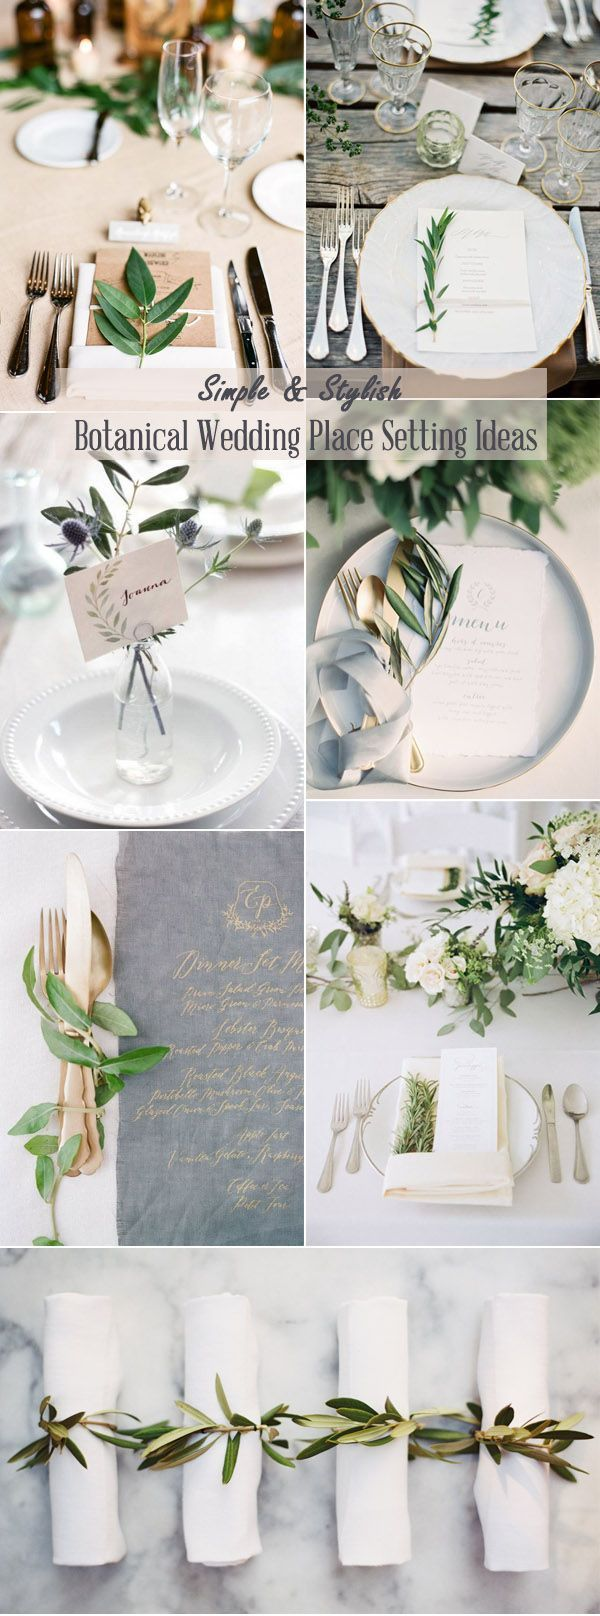 2019 Trends-Easy Diy Organic Minimalist Wedding Ideas #botanicgarden